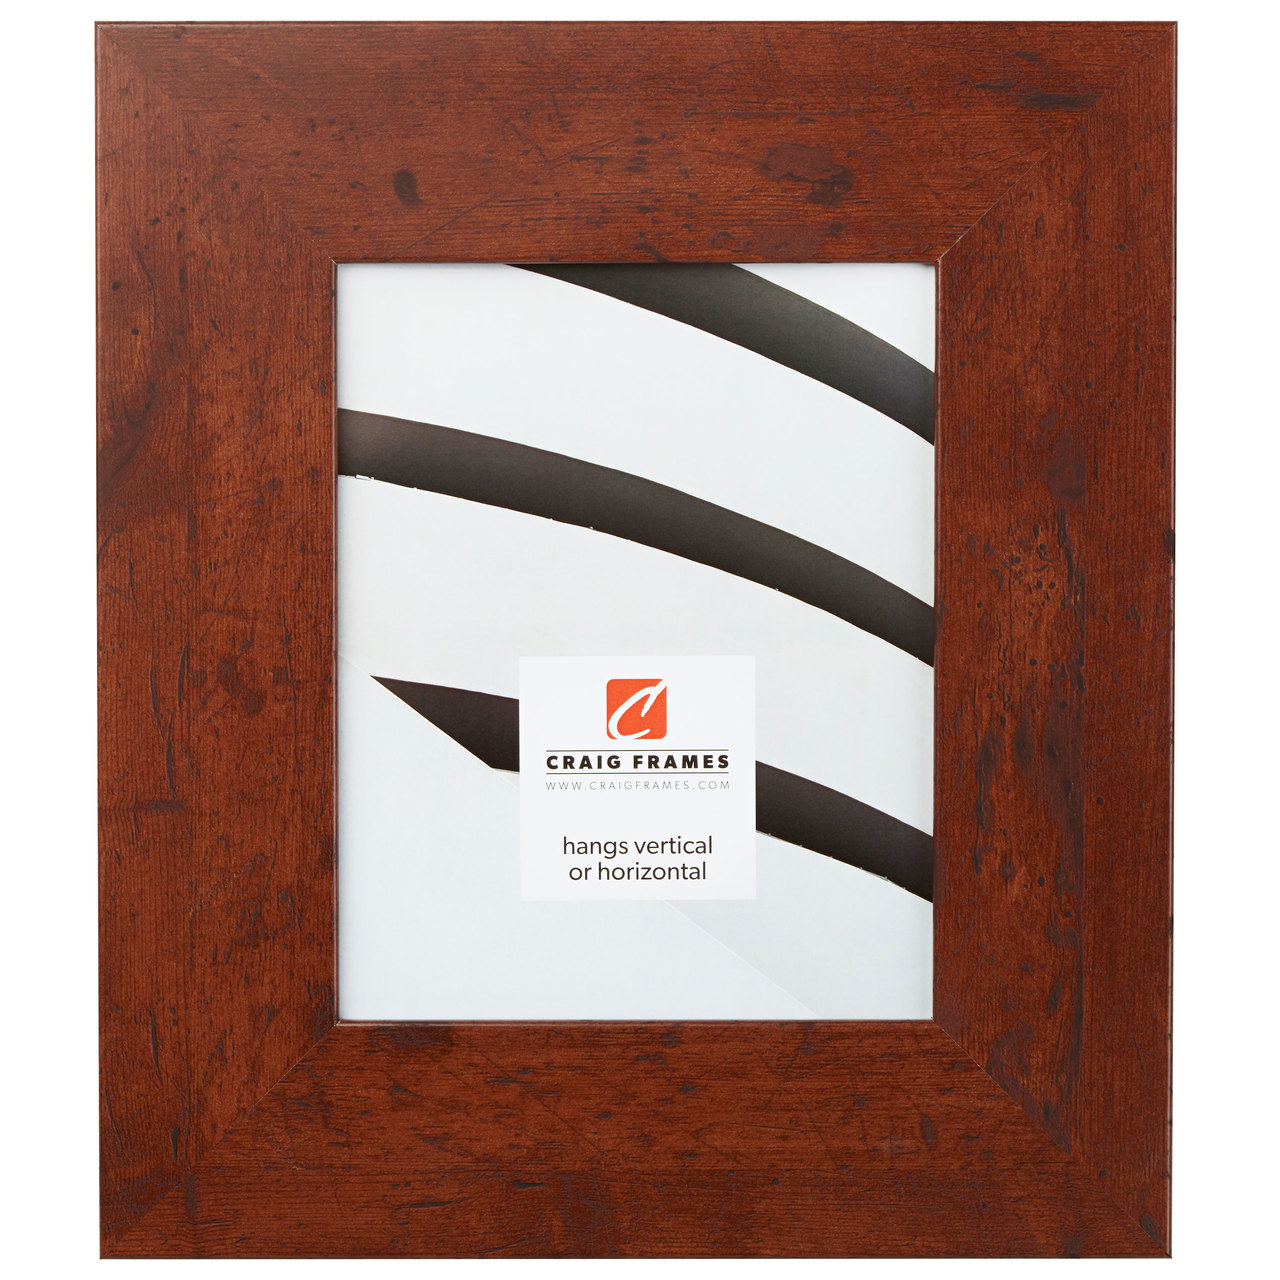 "Bauhaus 300 3"", Dark Walnut Picture Frame"